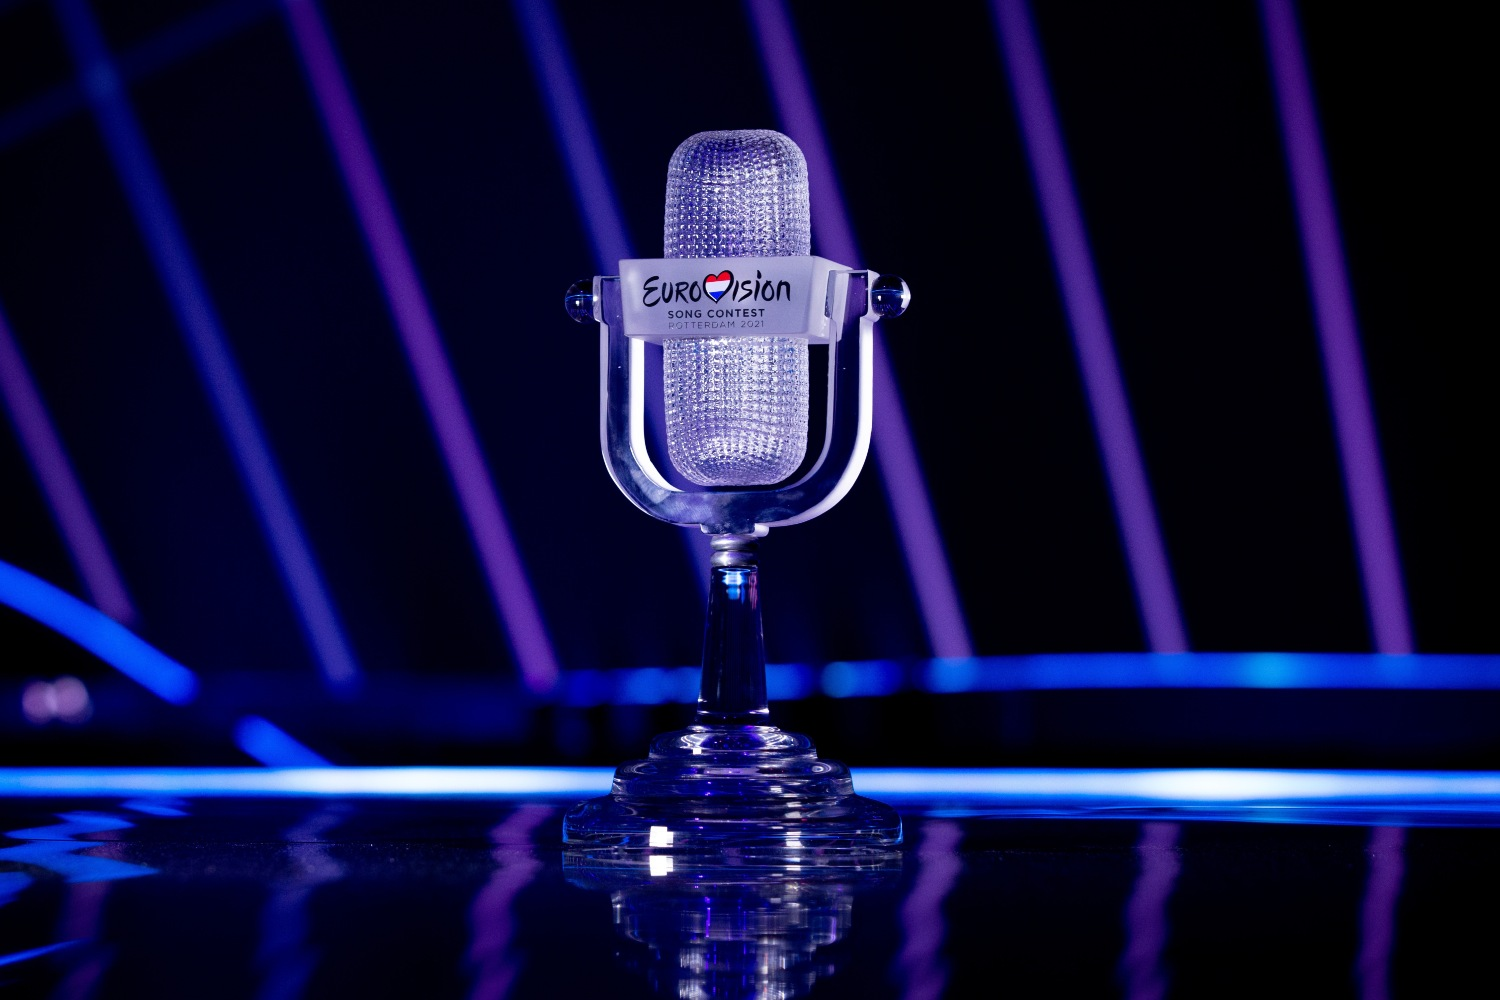 Eurovision Song Contest 2021 trophy 93746024